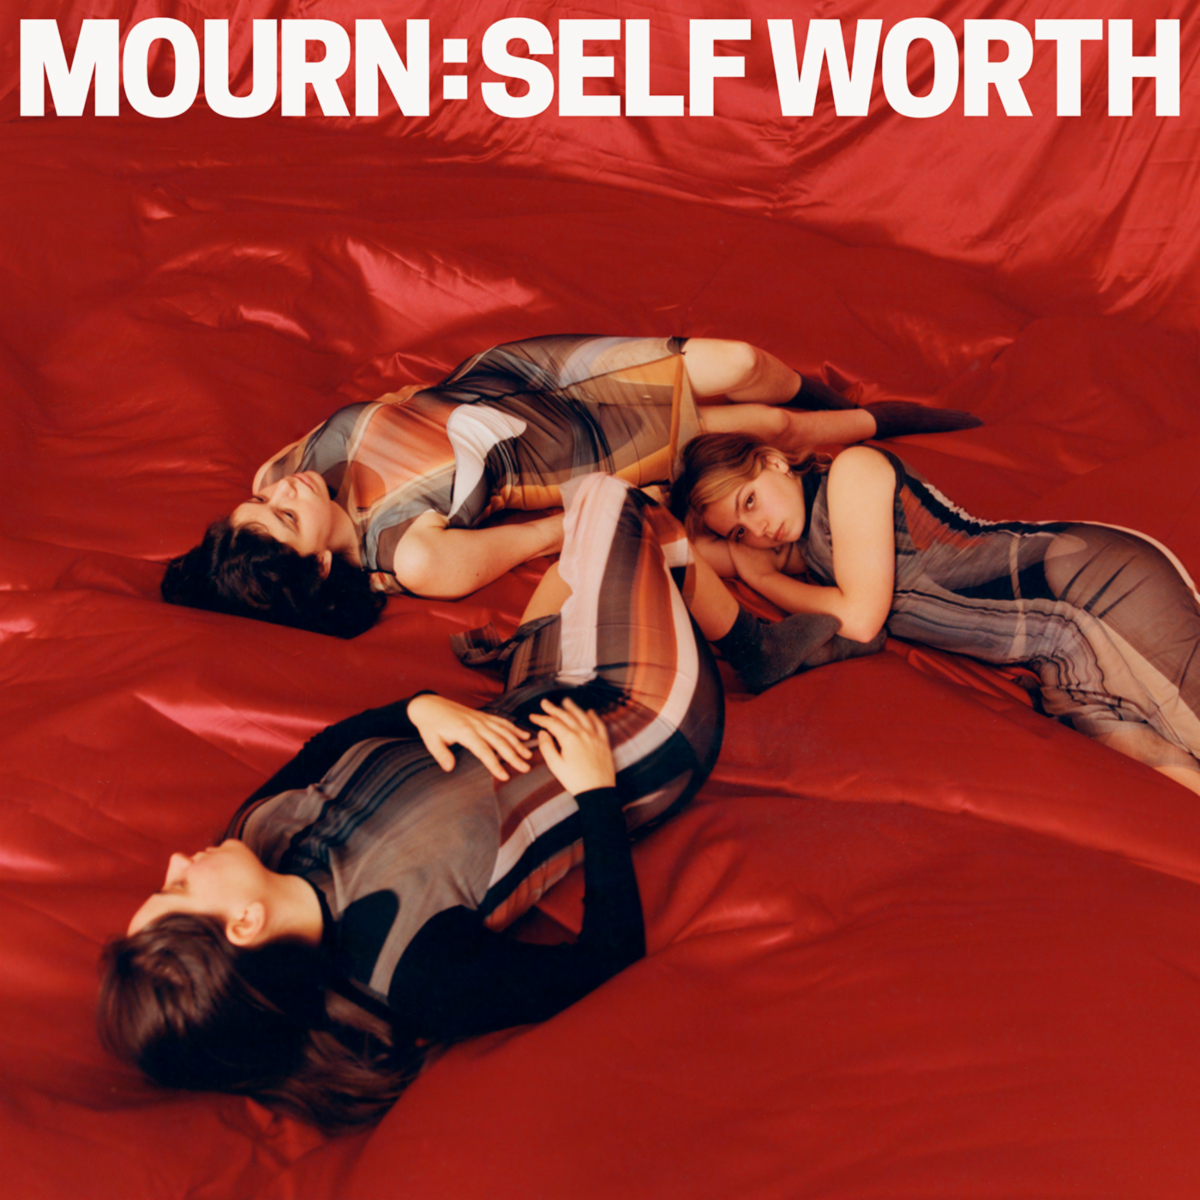 mourn self worth album art cover Mourn Announce New Album Self Worth, Share This Feeling is Disgusting: Stream